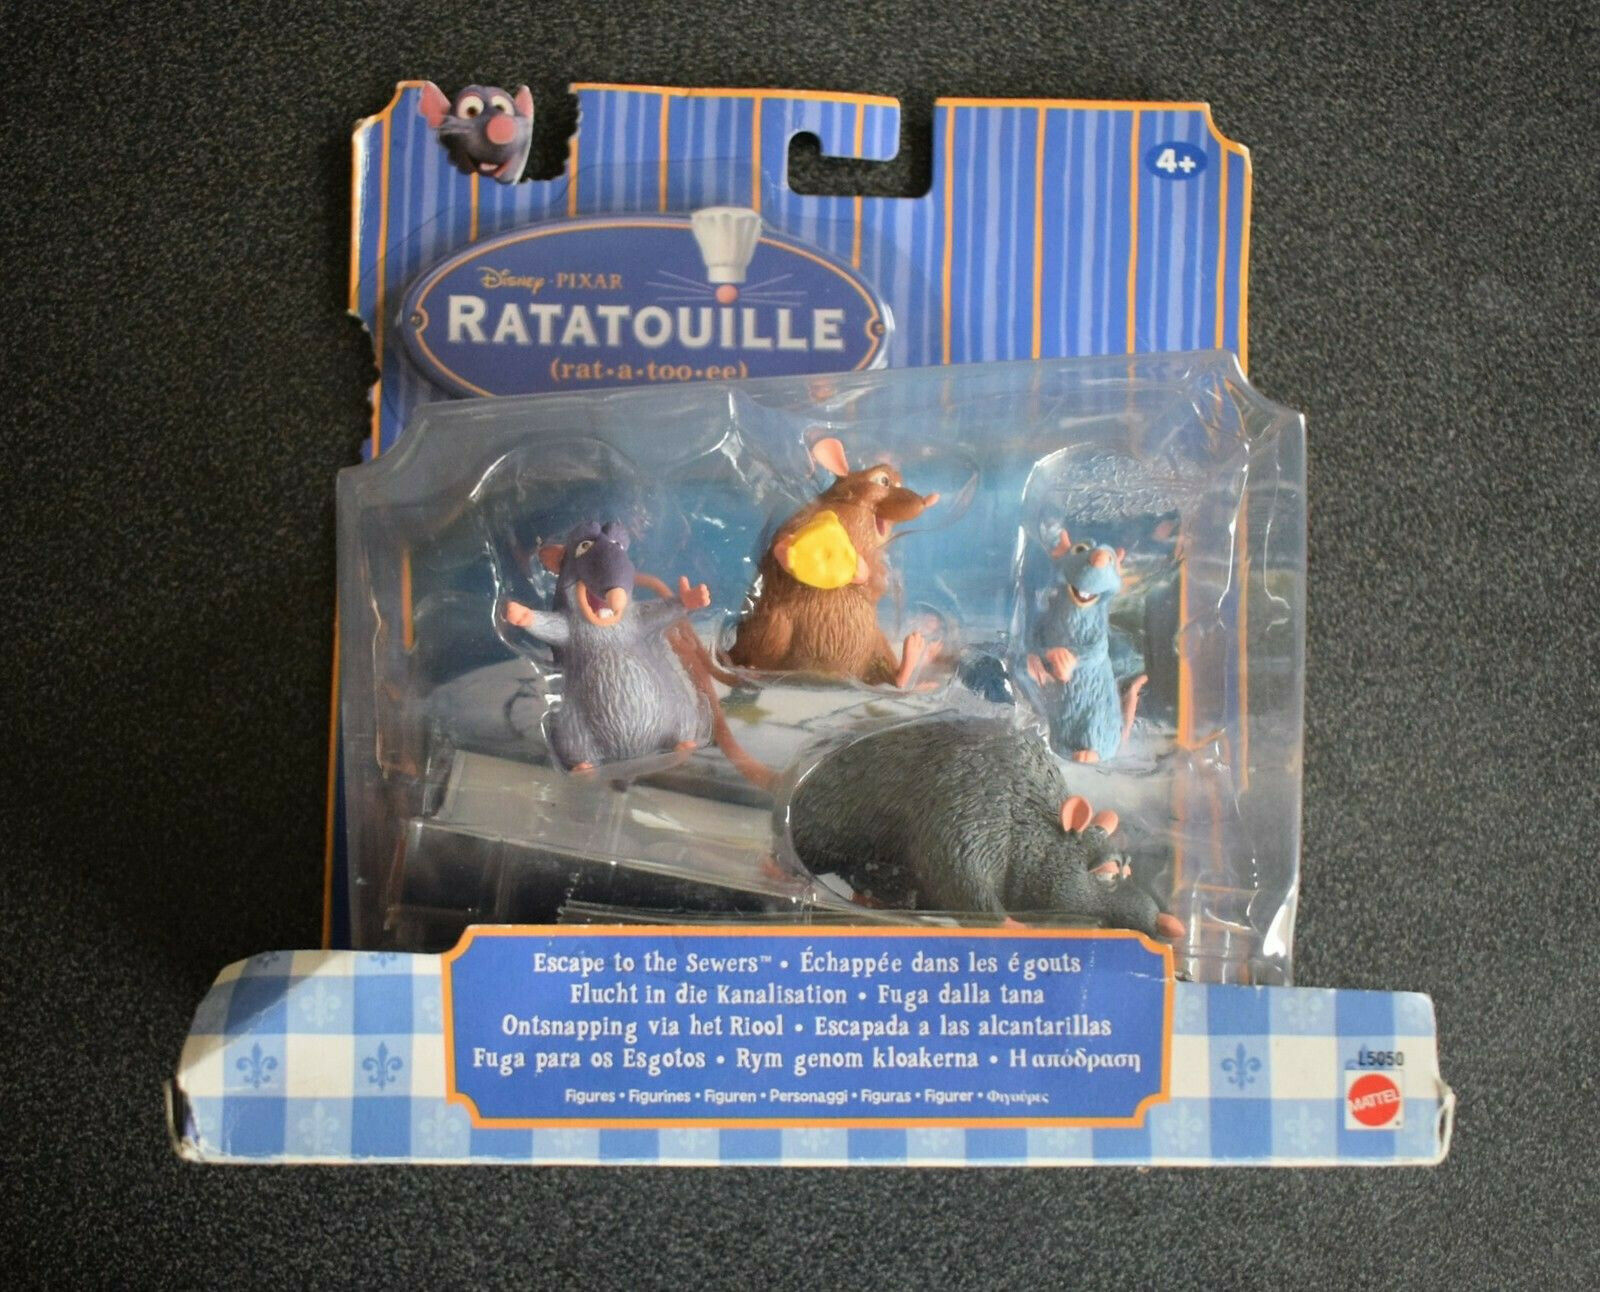 Ratatouille Movie Moment - Escape To The Sewers